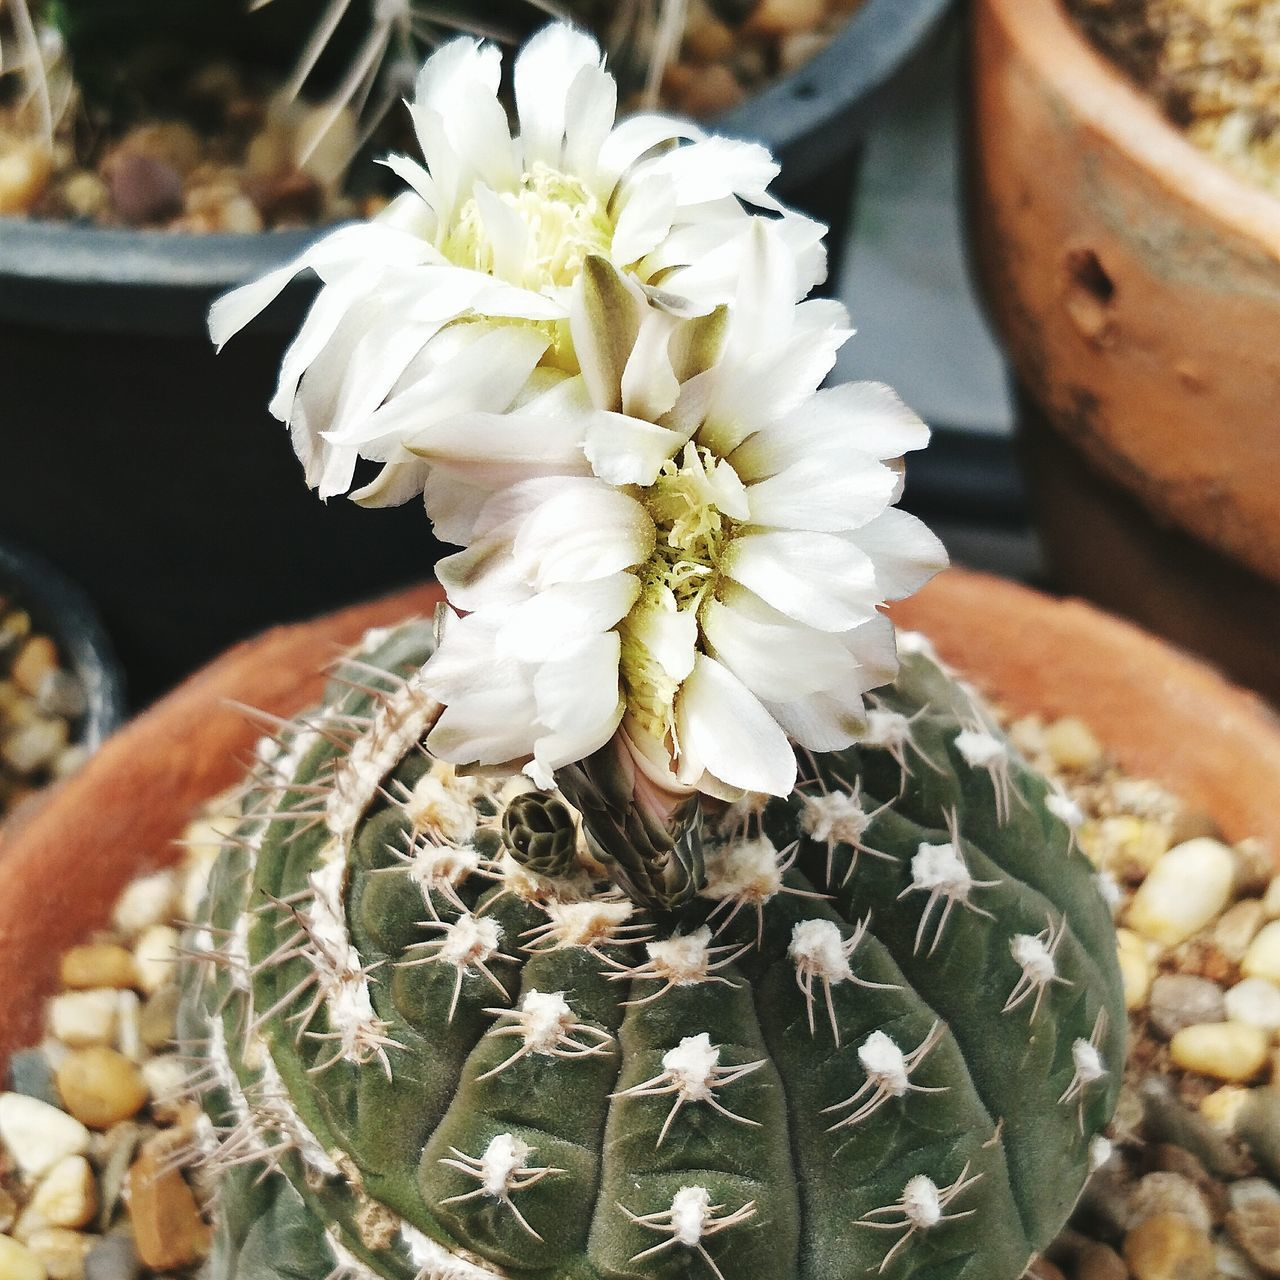 Flower Gymnocalycium Cactus Plant Gymnocactus Cactusflower Cristata Plant No People Beauty In Nature Cactuslover